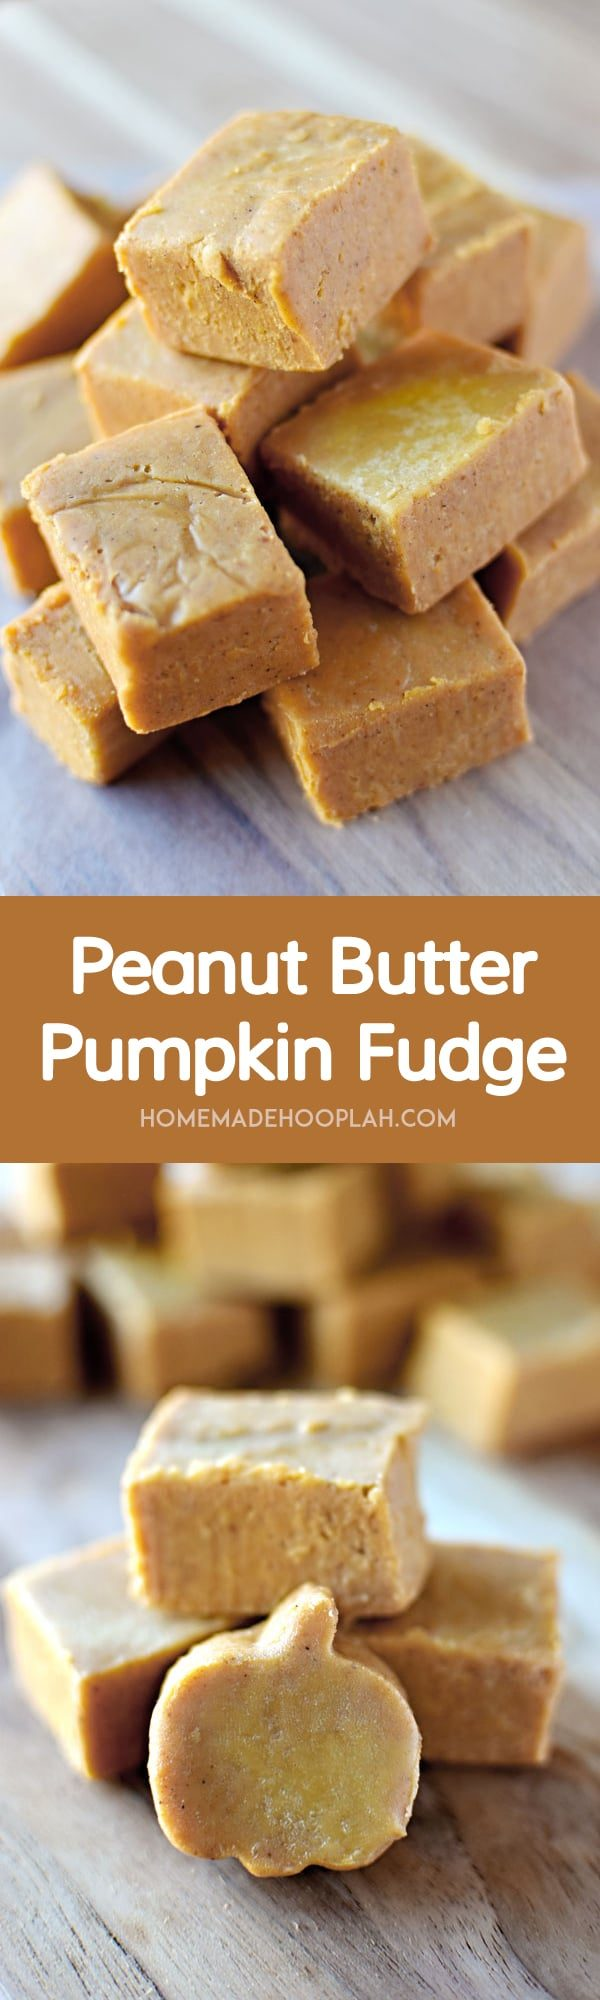 Peanut Butter Pumpkin Fudge! White chocolate fudge laced with creamy peanut butter and festive pumpkin that you can whip together in less than 10 minutes! | HomemadeHooplah.com